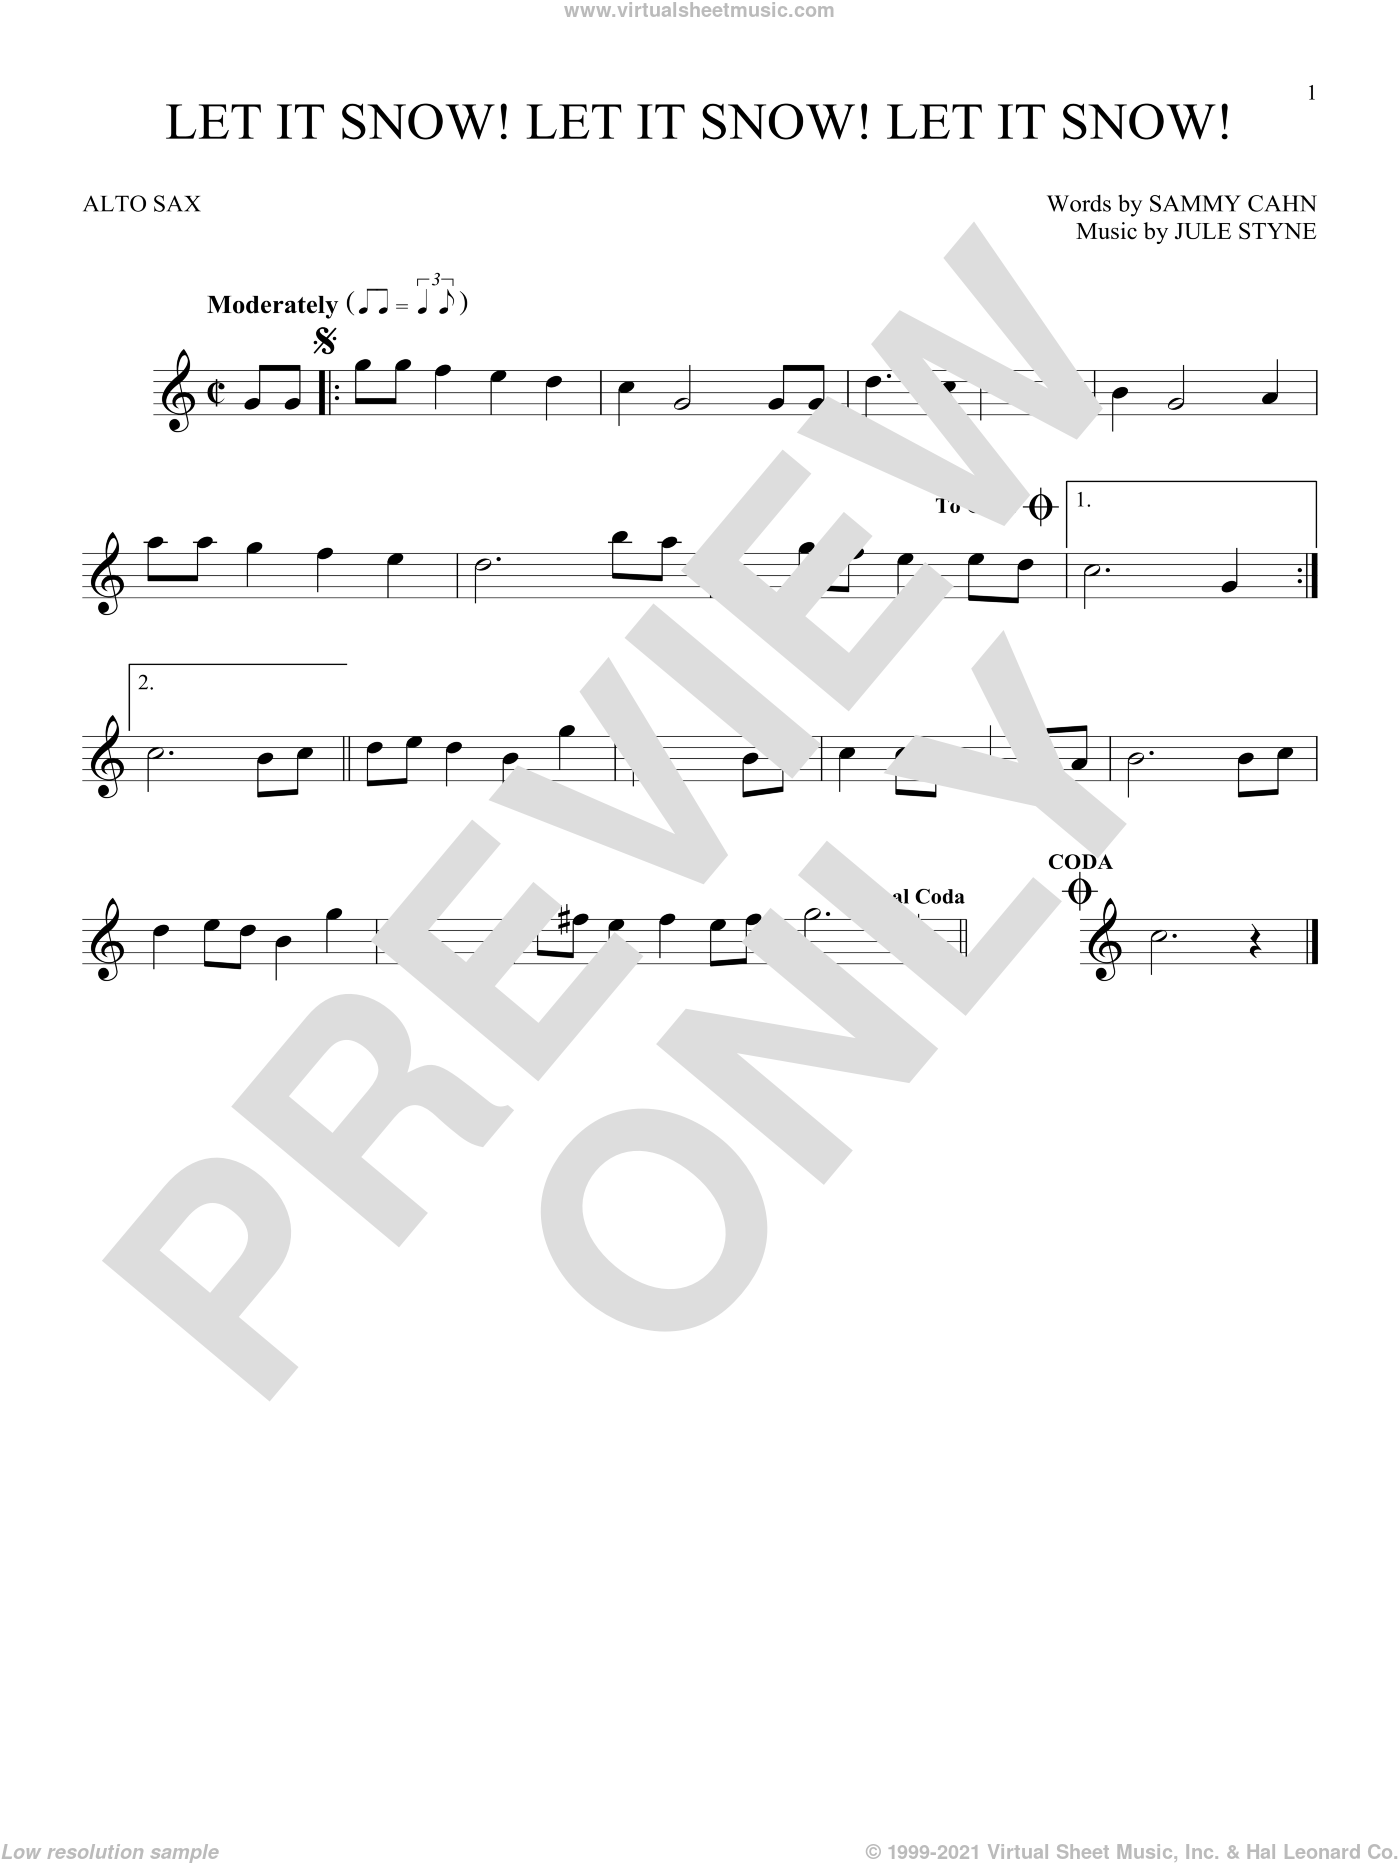 Let It Snow! Let It Snow! Let It Snow! sheet music for alto saxophone solo by Sammy Cahn, Jule Styne and Sammy Cahn & Julie Styne, intermediate. Score Image Preview.